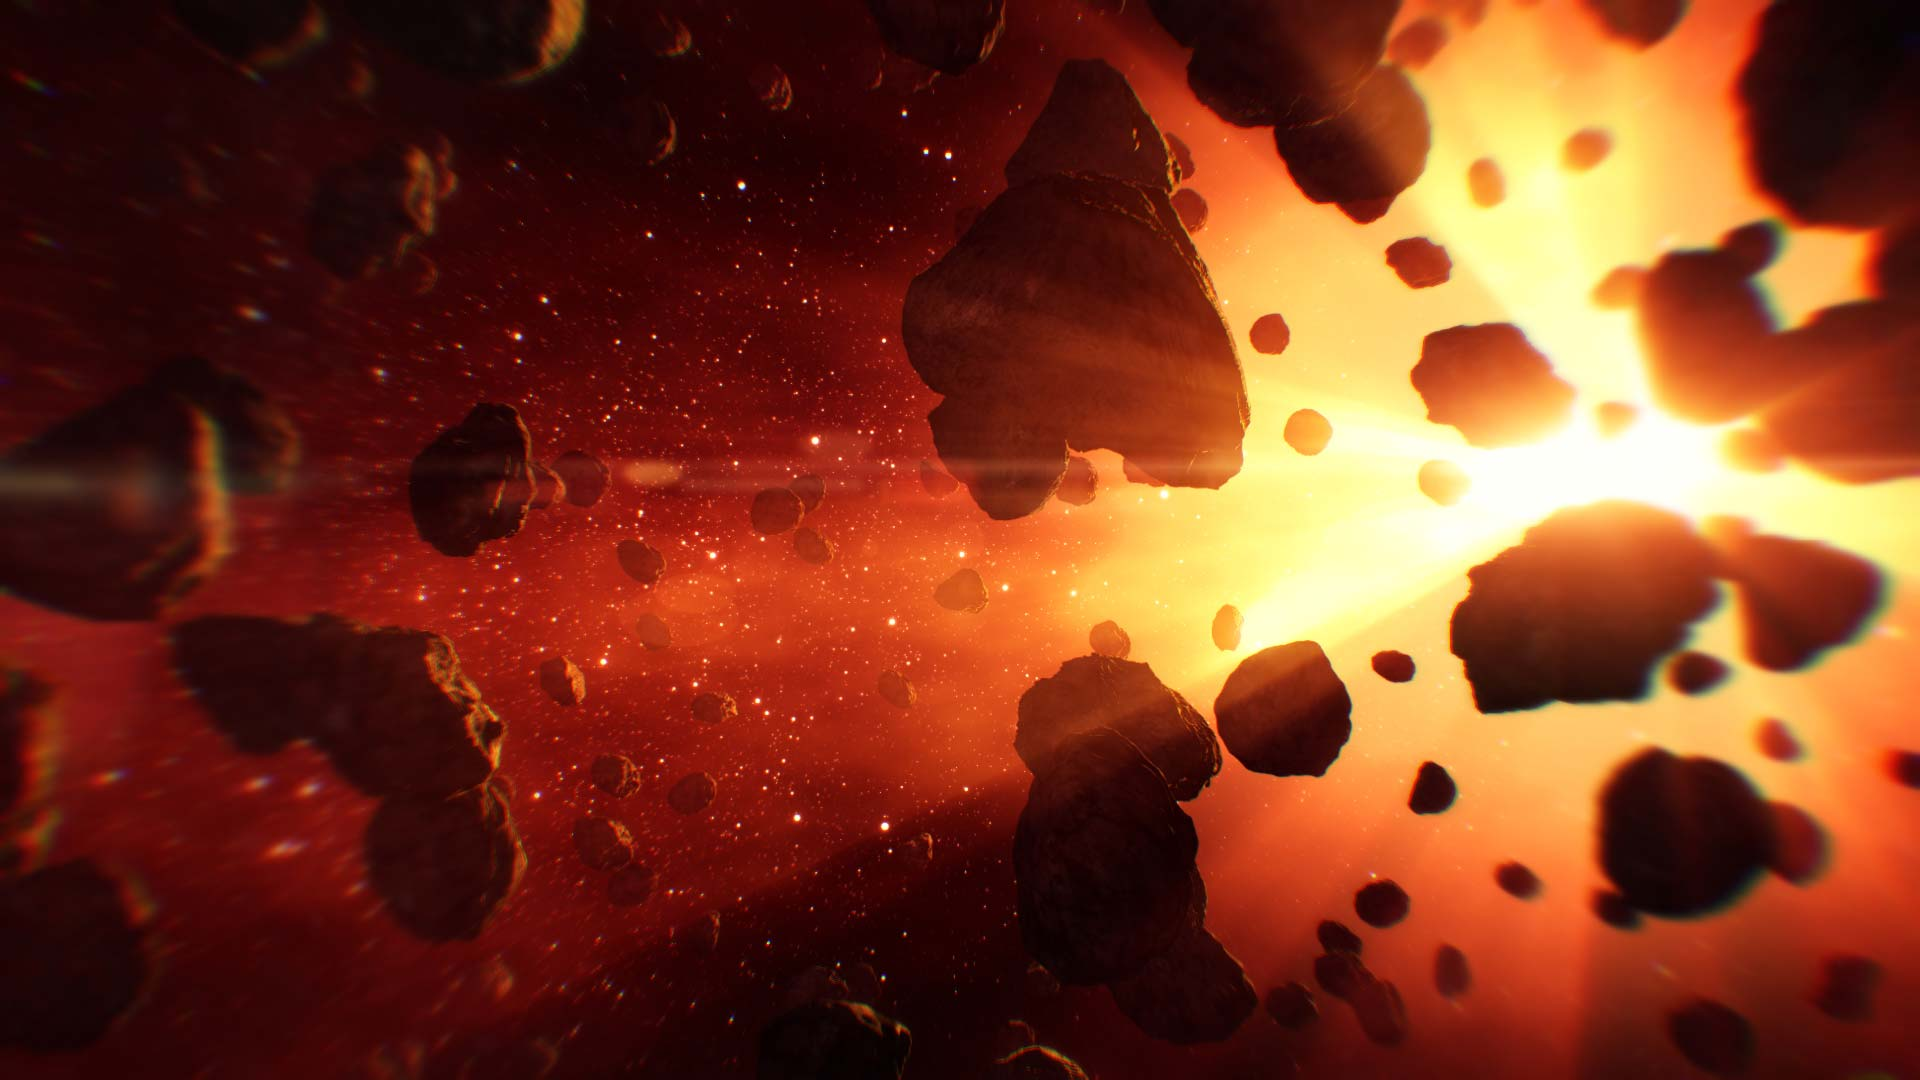 Windows 10 Wallpapers Hd Fall Red Giant Getting Started With Trapcode Shine In After